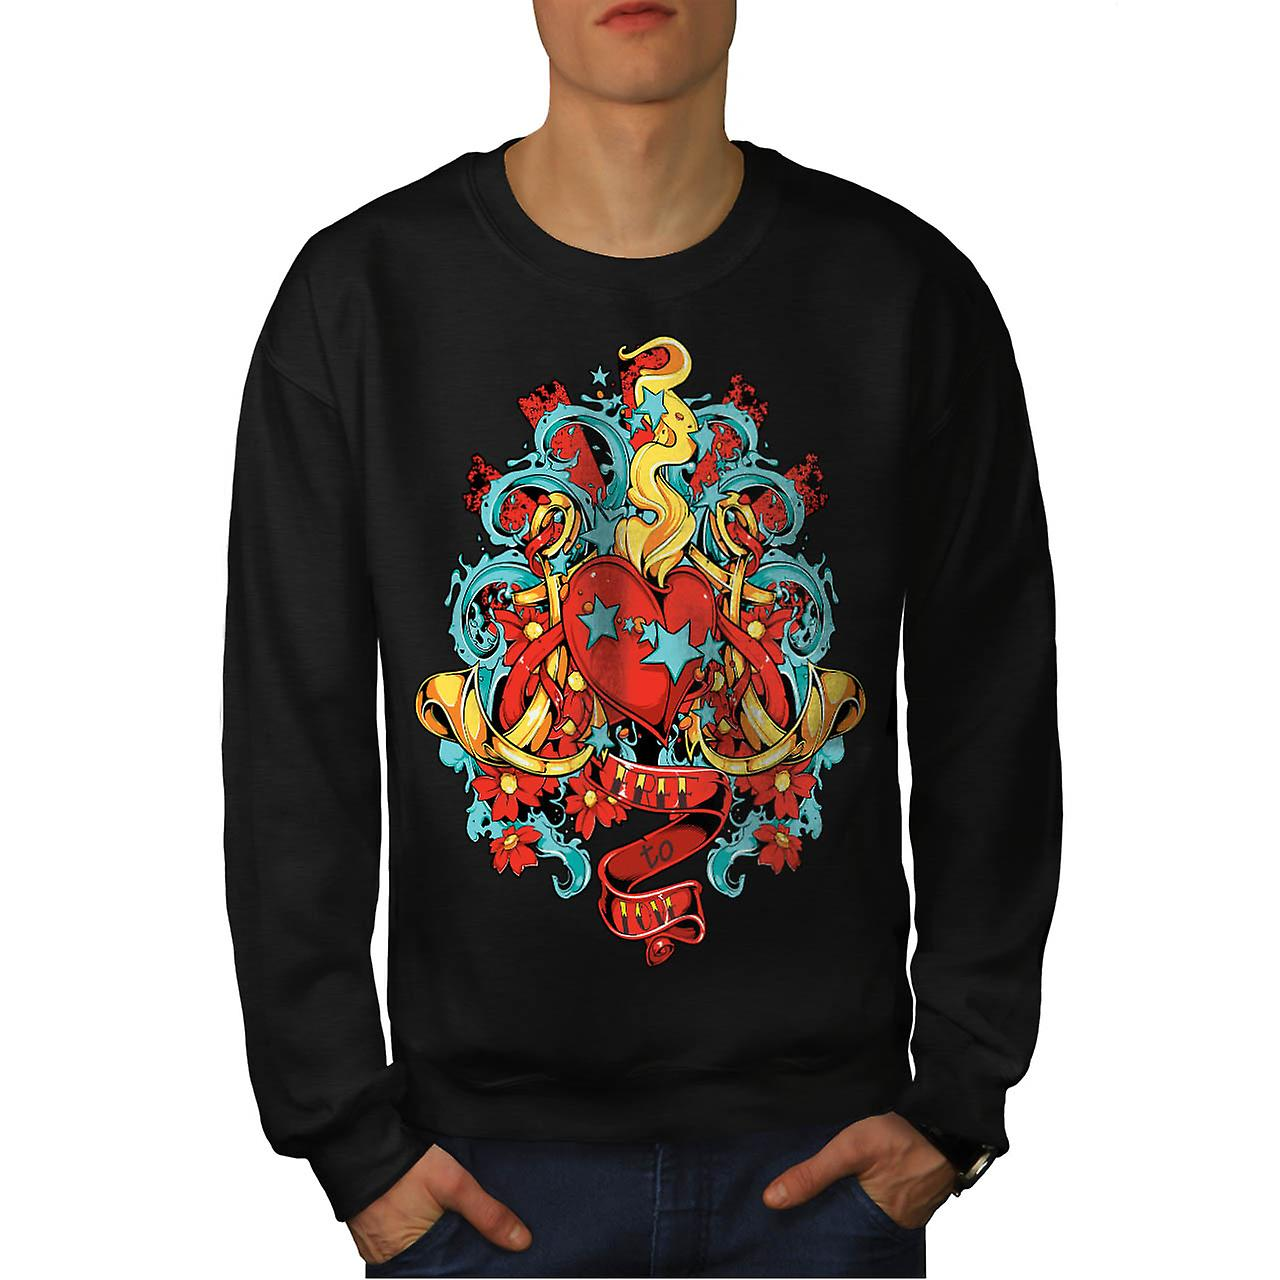 Free To Love Valentine Men Black Sweatshirt | Wellcoda